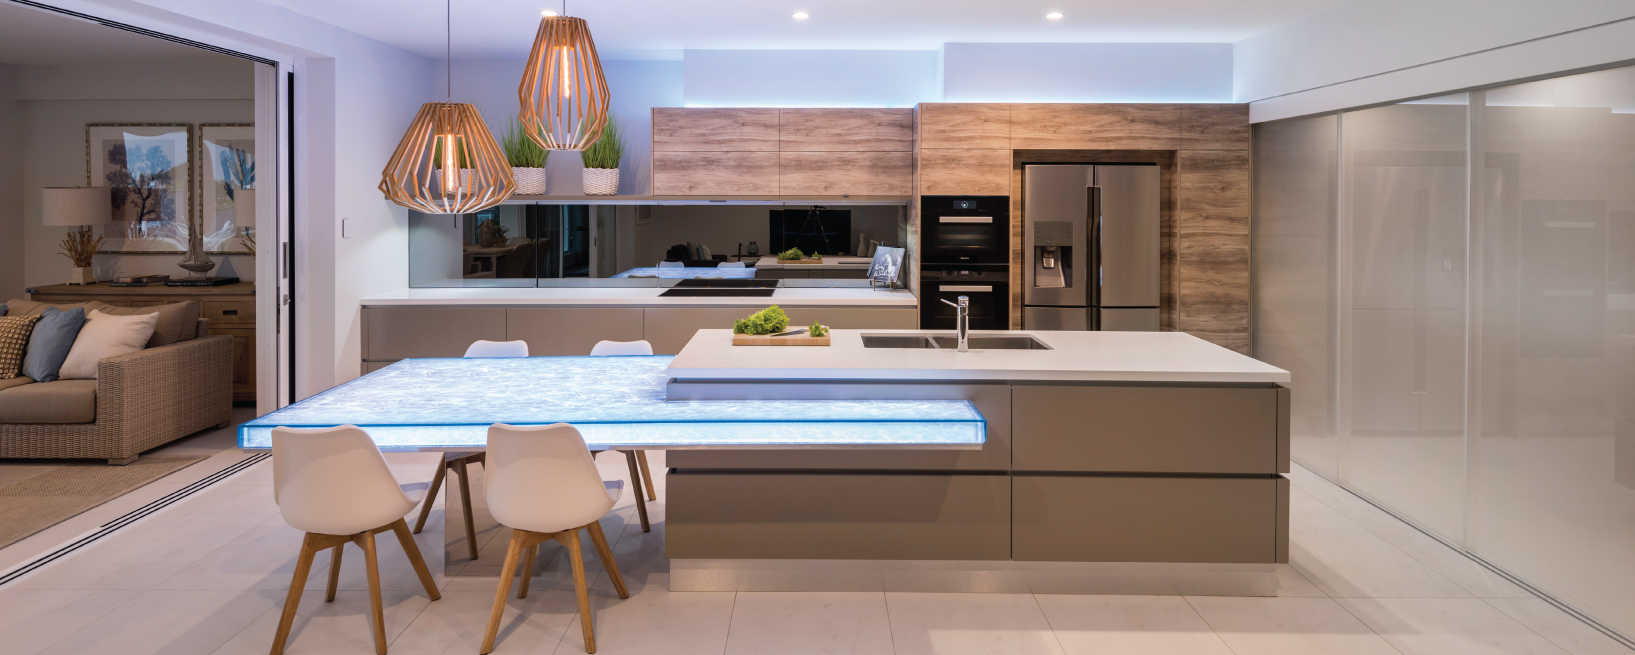 Luxury Kitchens Brisbane Australia